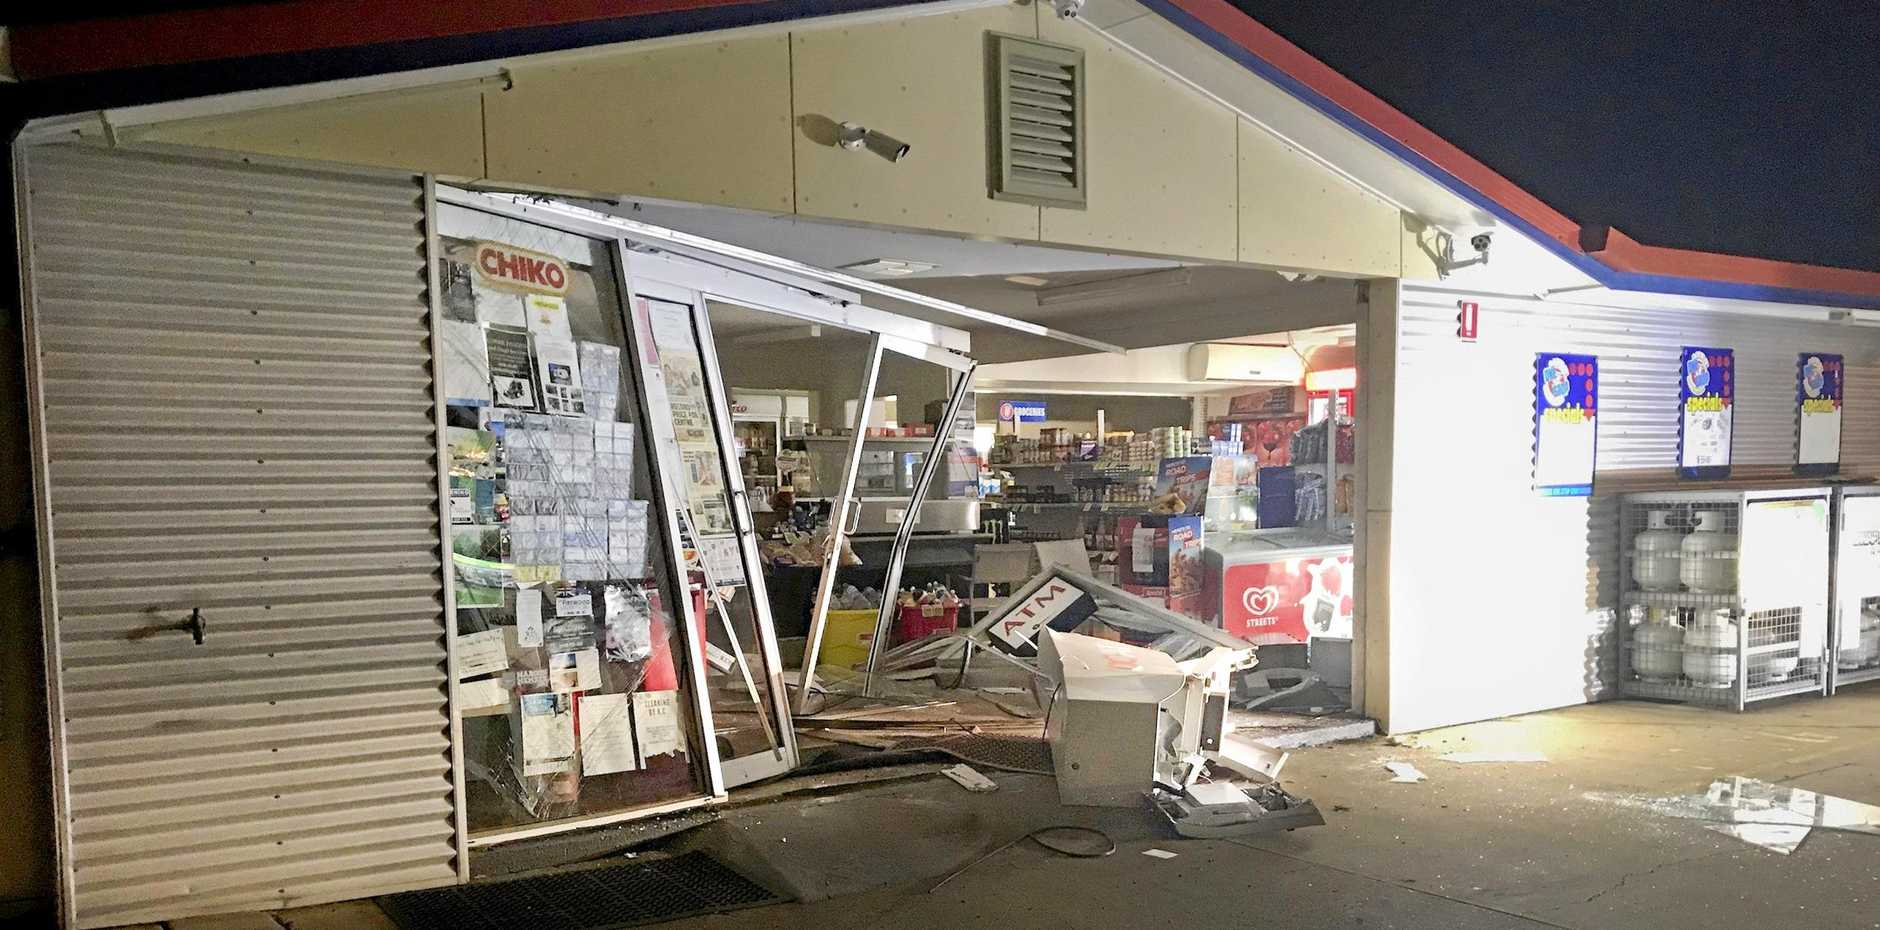 ATM theft at Gowrie One Stop Convenience Centre. Wednesday, 15th May, 2019.